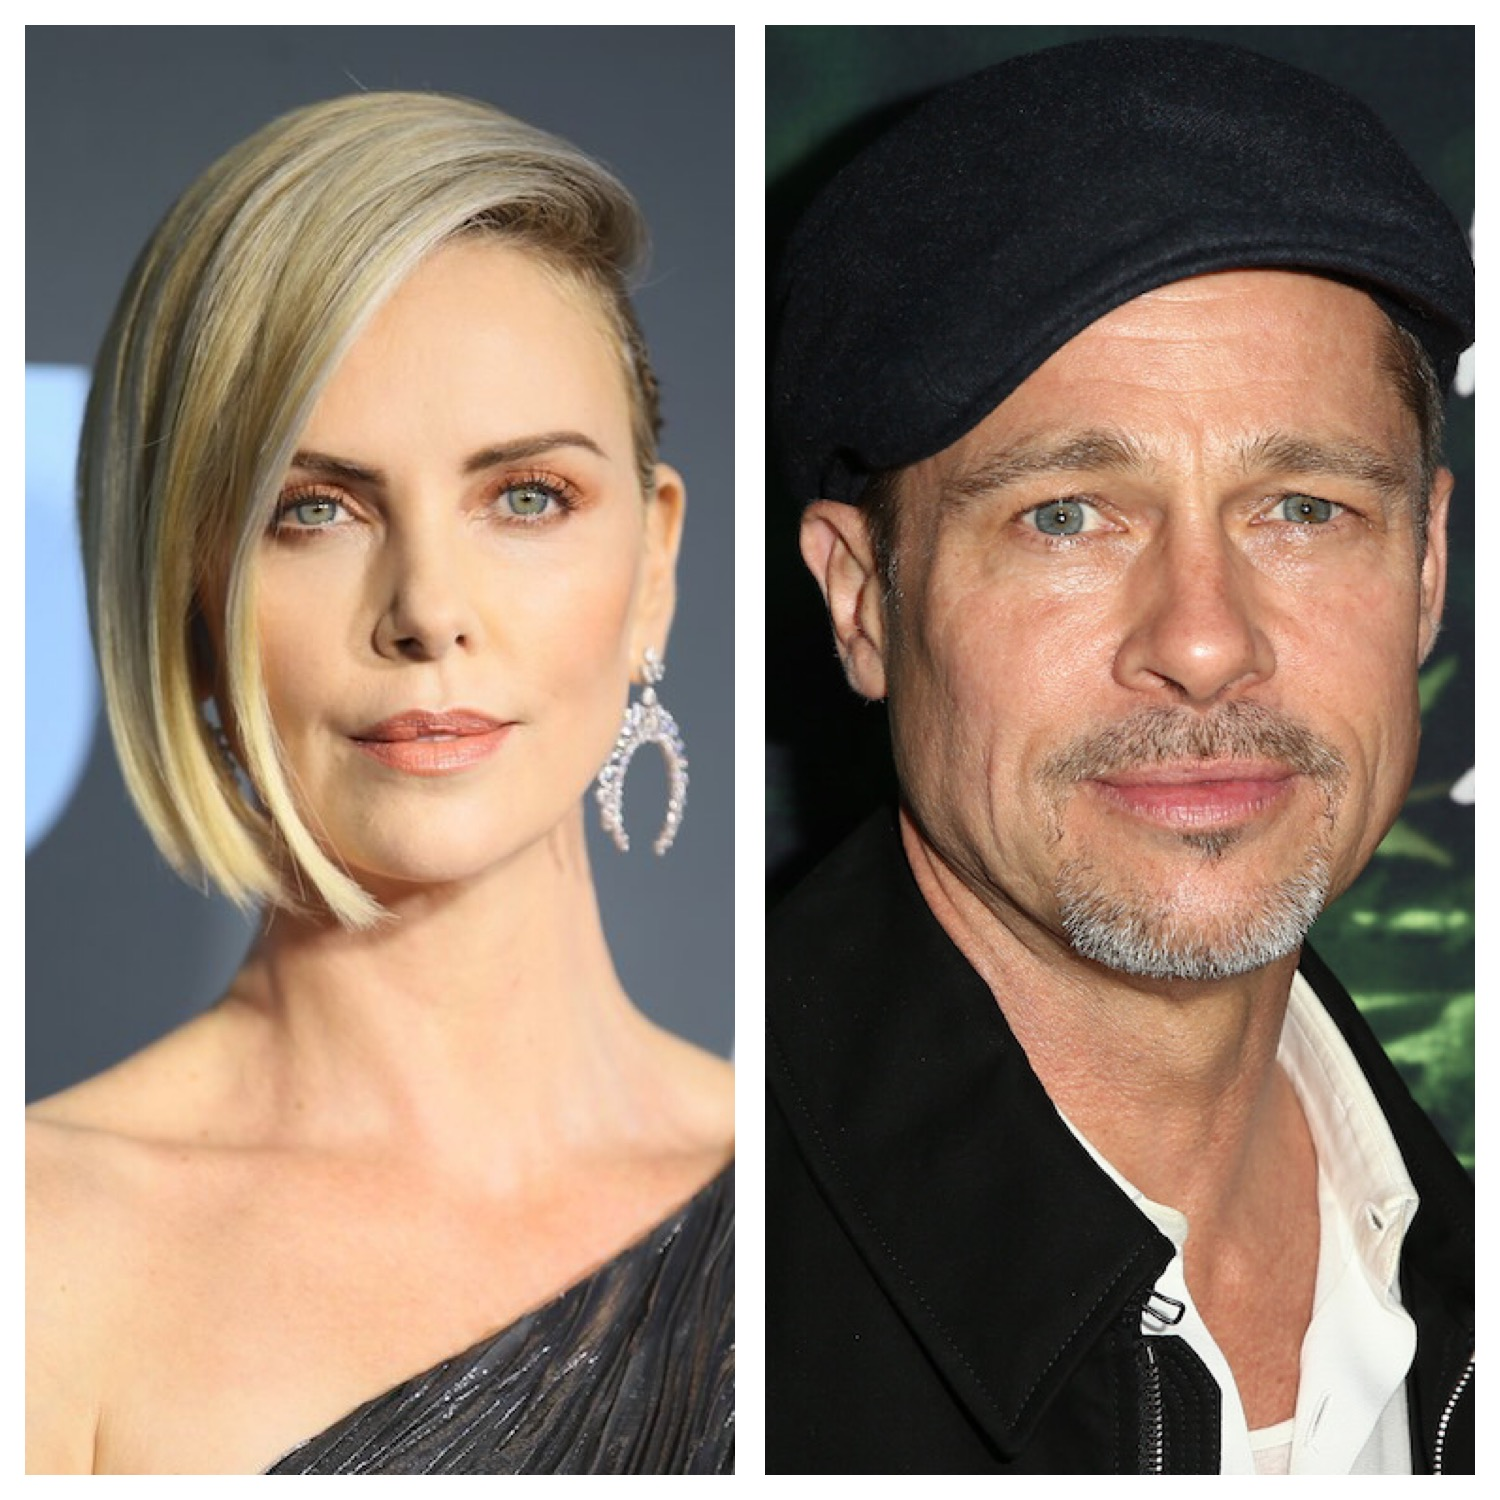 Brad Pitt 'dating' Charlize Theron - after being introduced by her ex fiancé